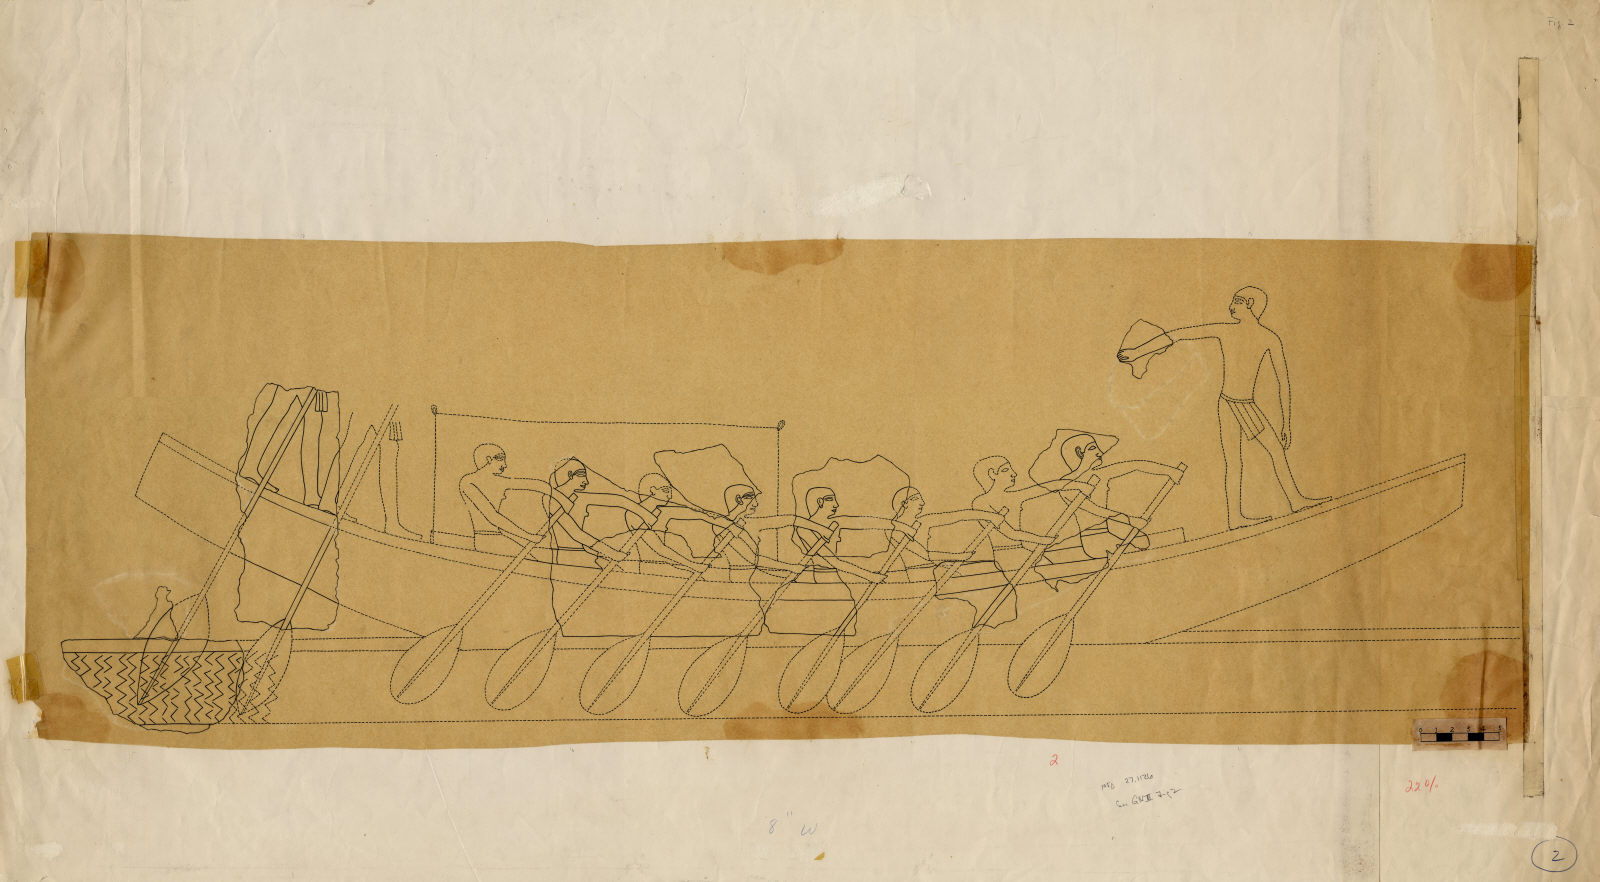 Drawings: Street G 7000: relief, boating scene